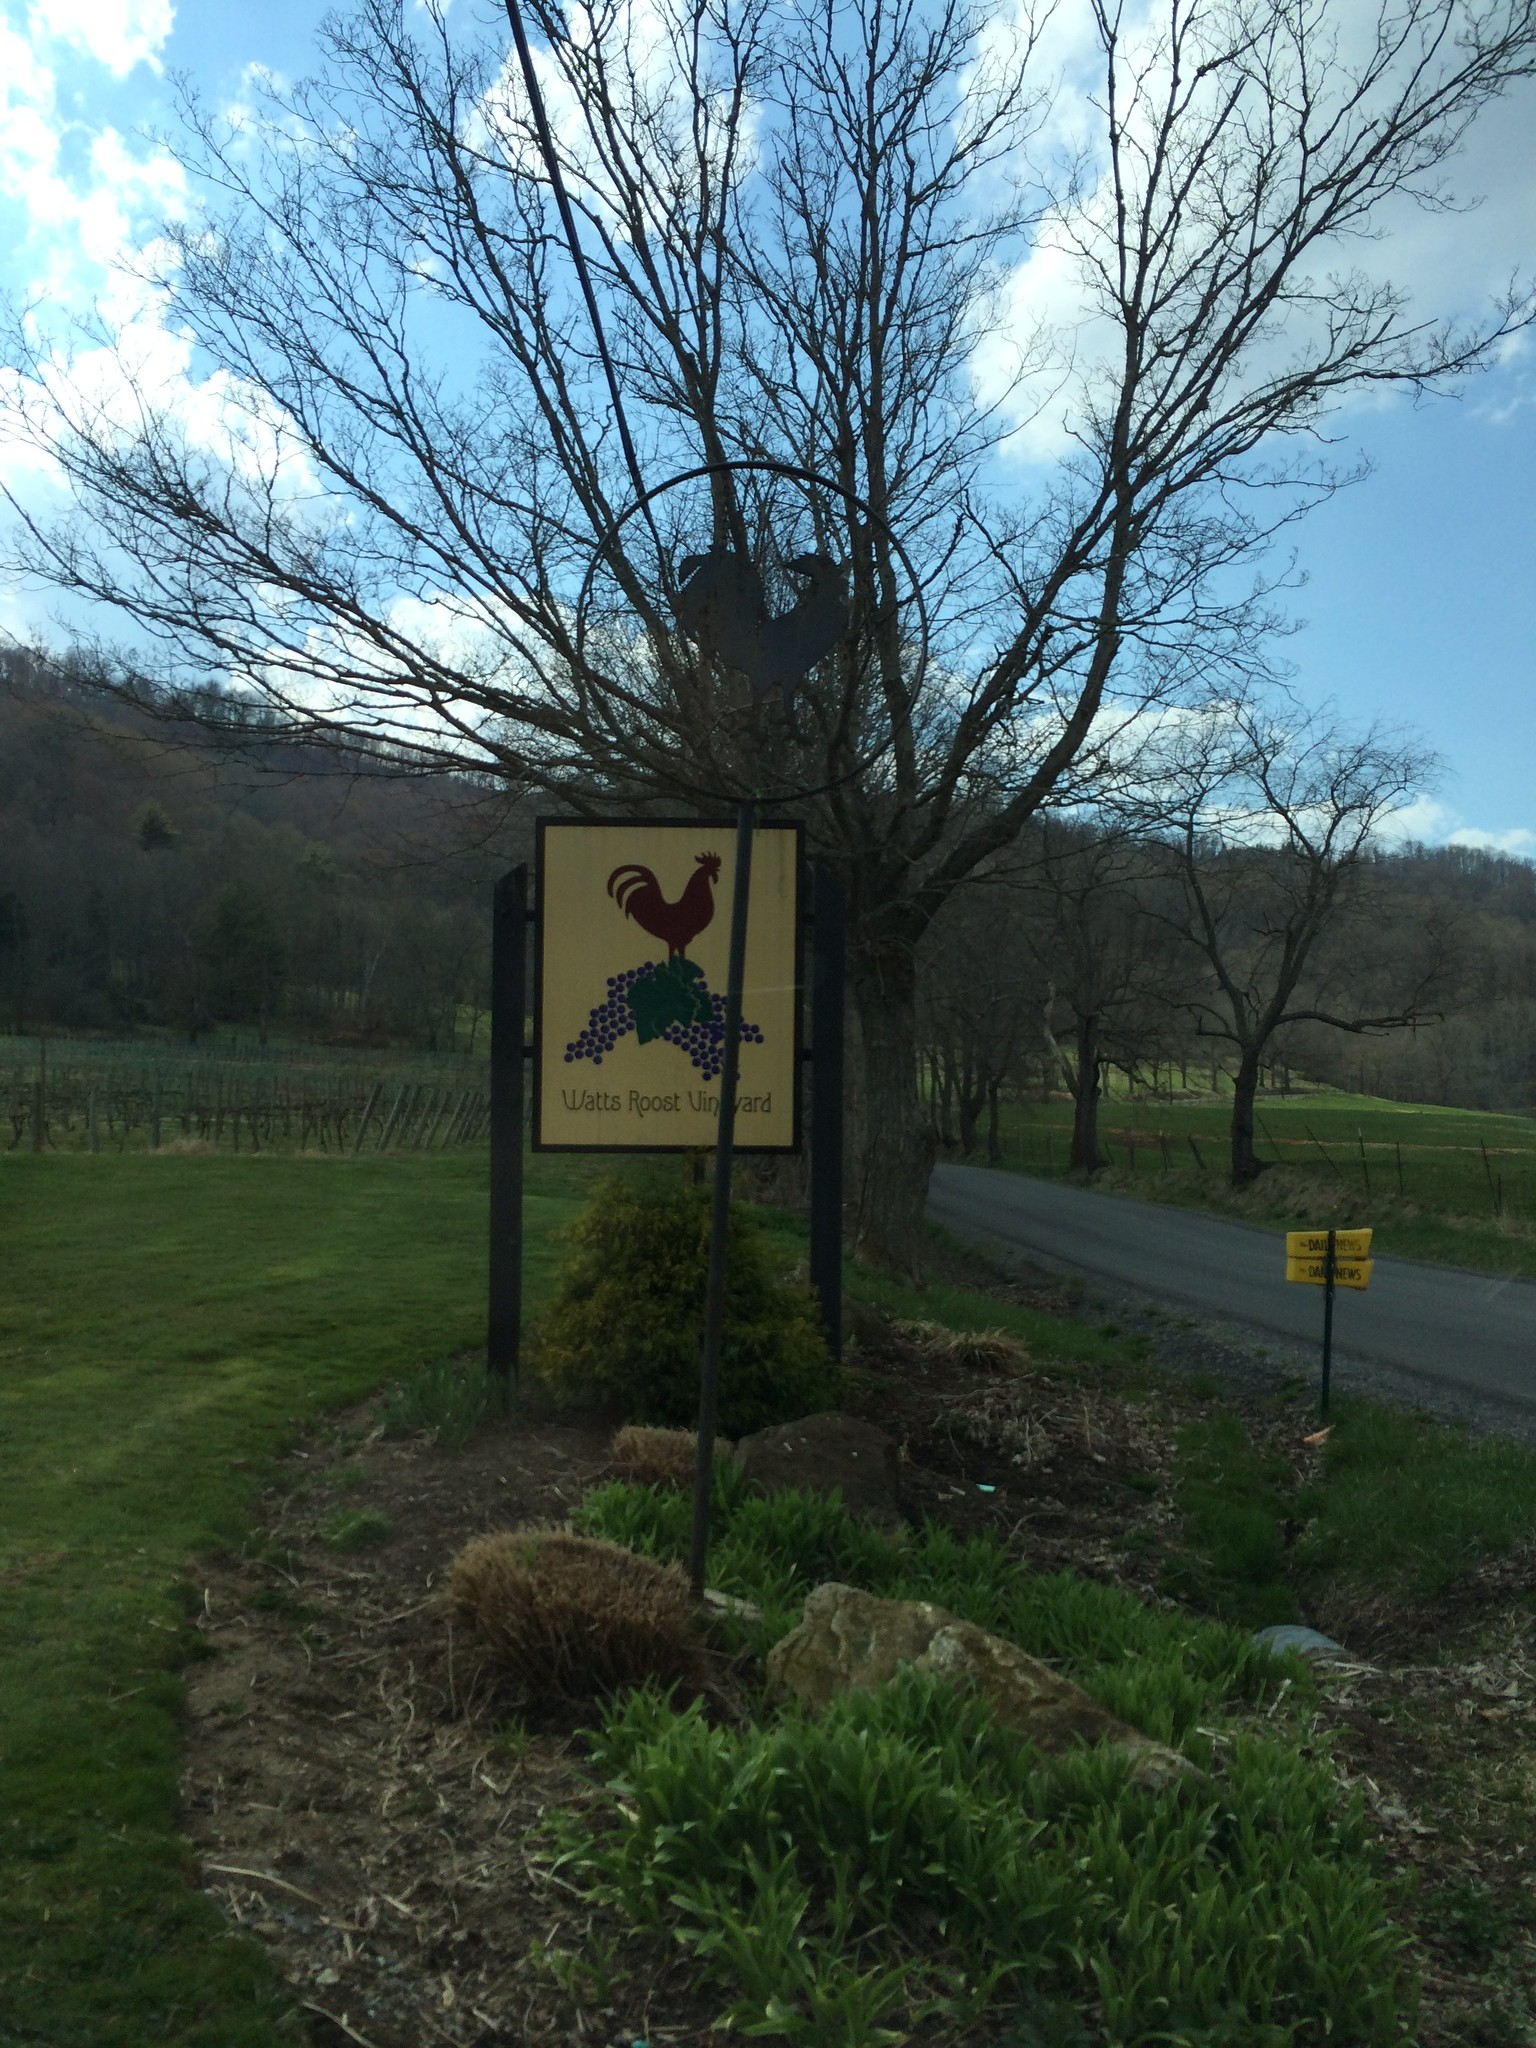 Watts Roost Winery